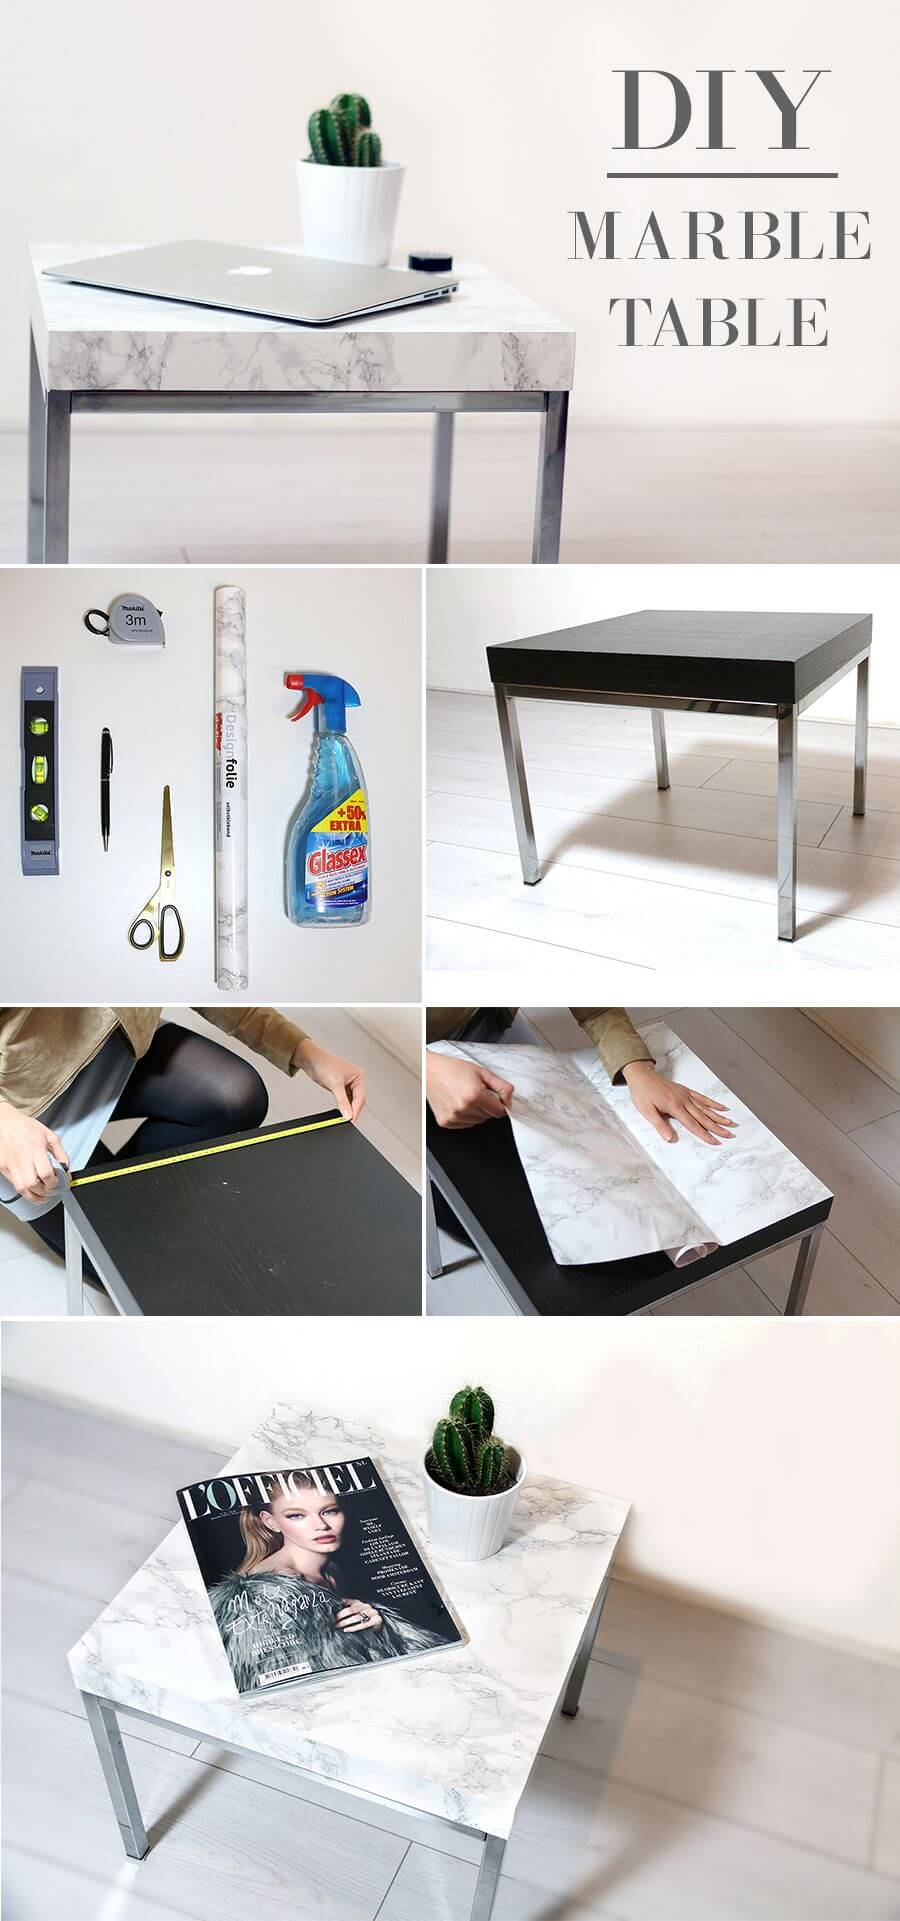 Miraculous Roman Marble Diy Side Table Homebnc Home Interior And Landscaping Ponolsignezvosmurscom